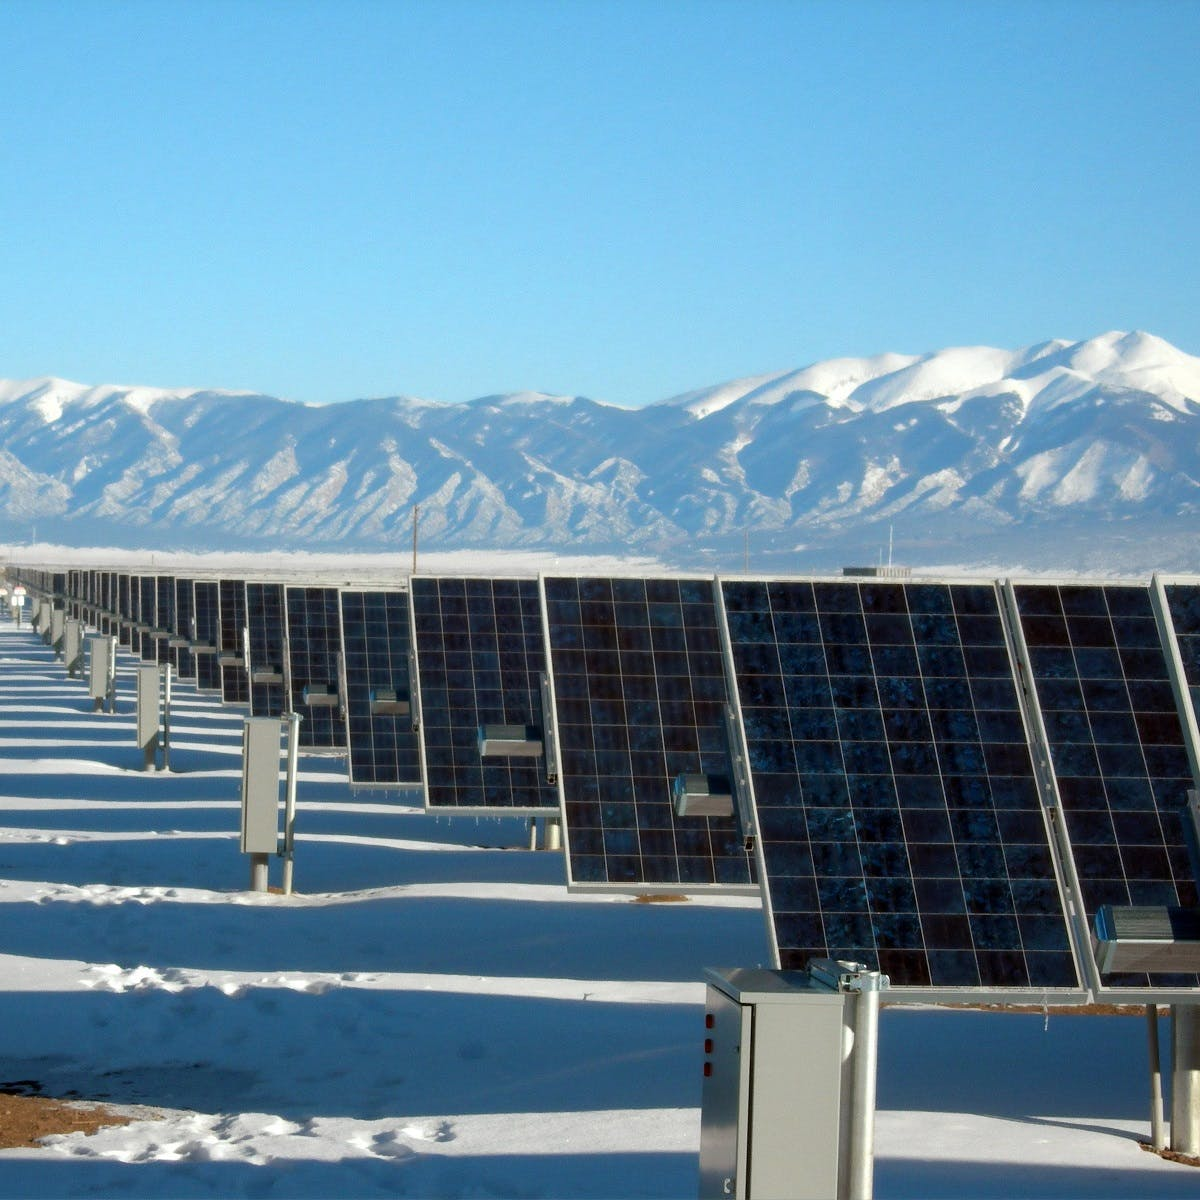 A row of solar panels under blue skies  in front of snow capped mountains